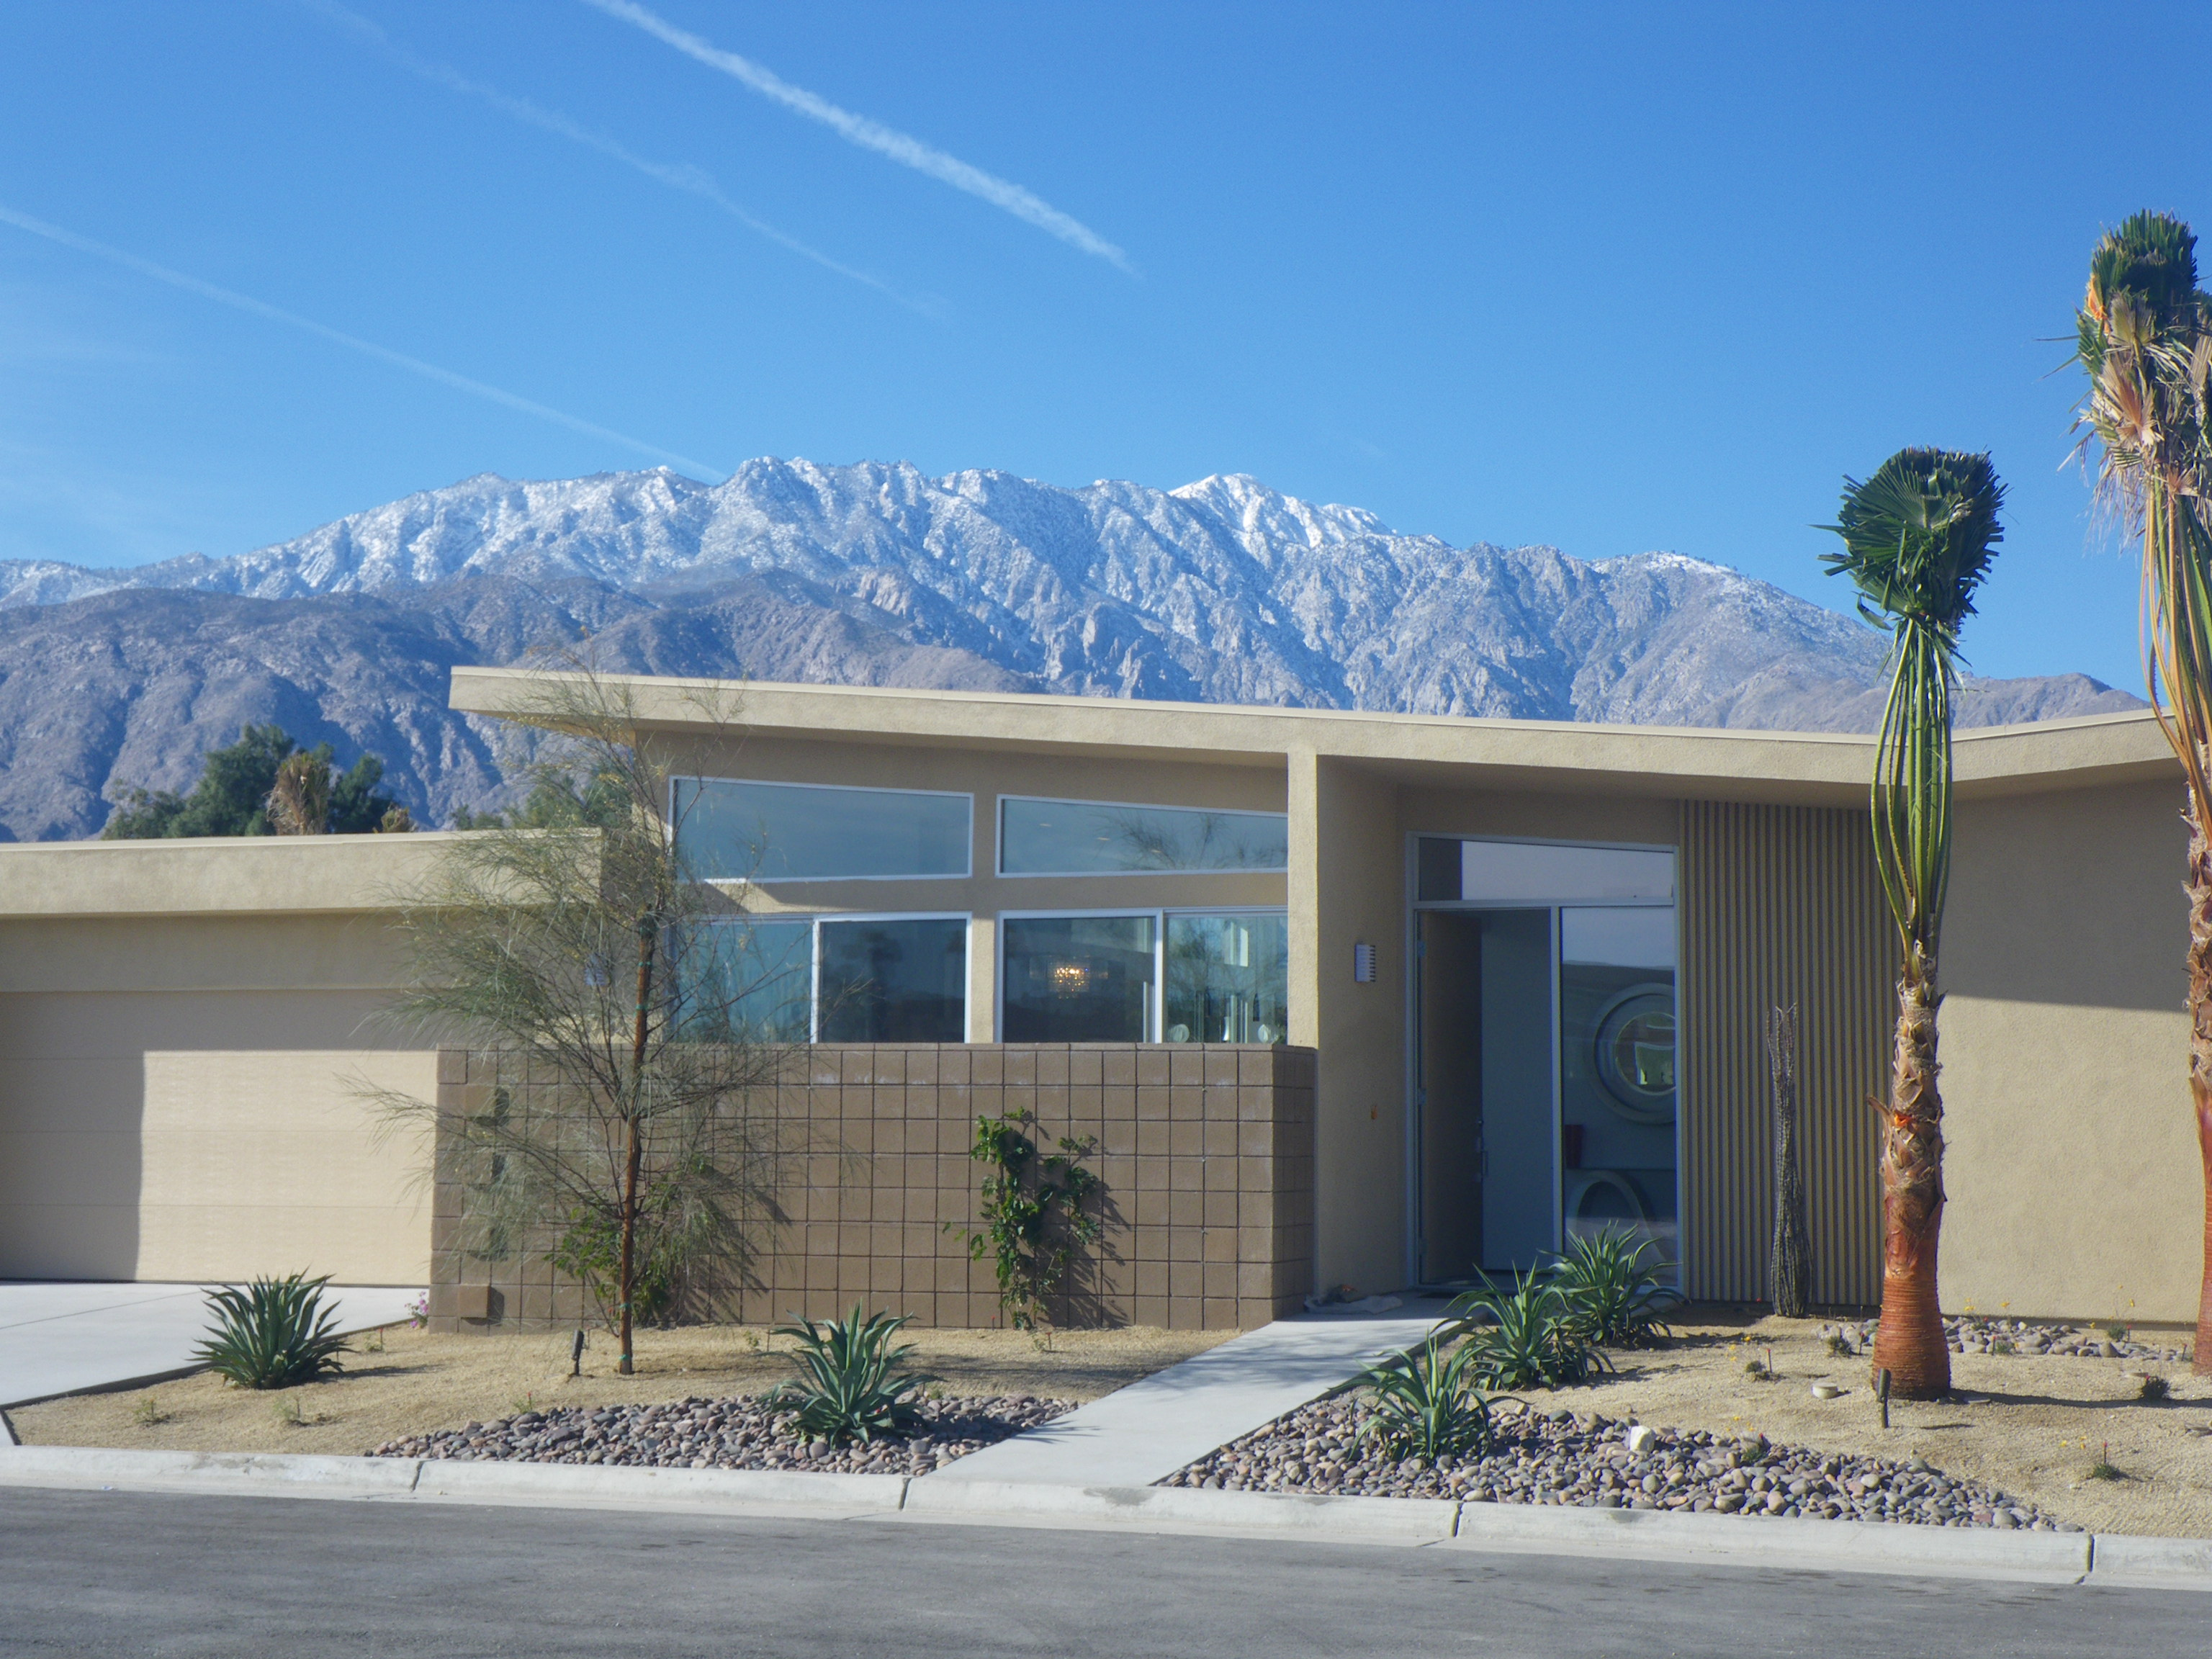 Palm springs new mid century homes live from la quinta for Buy house palm springs